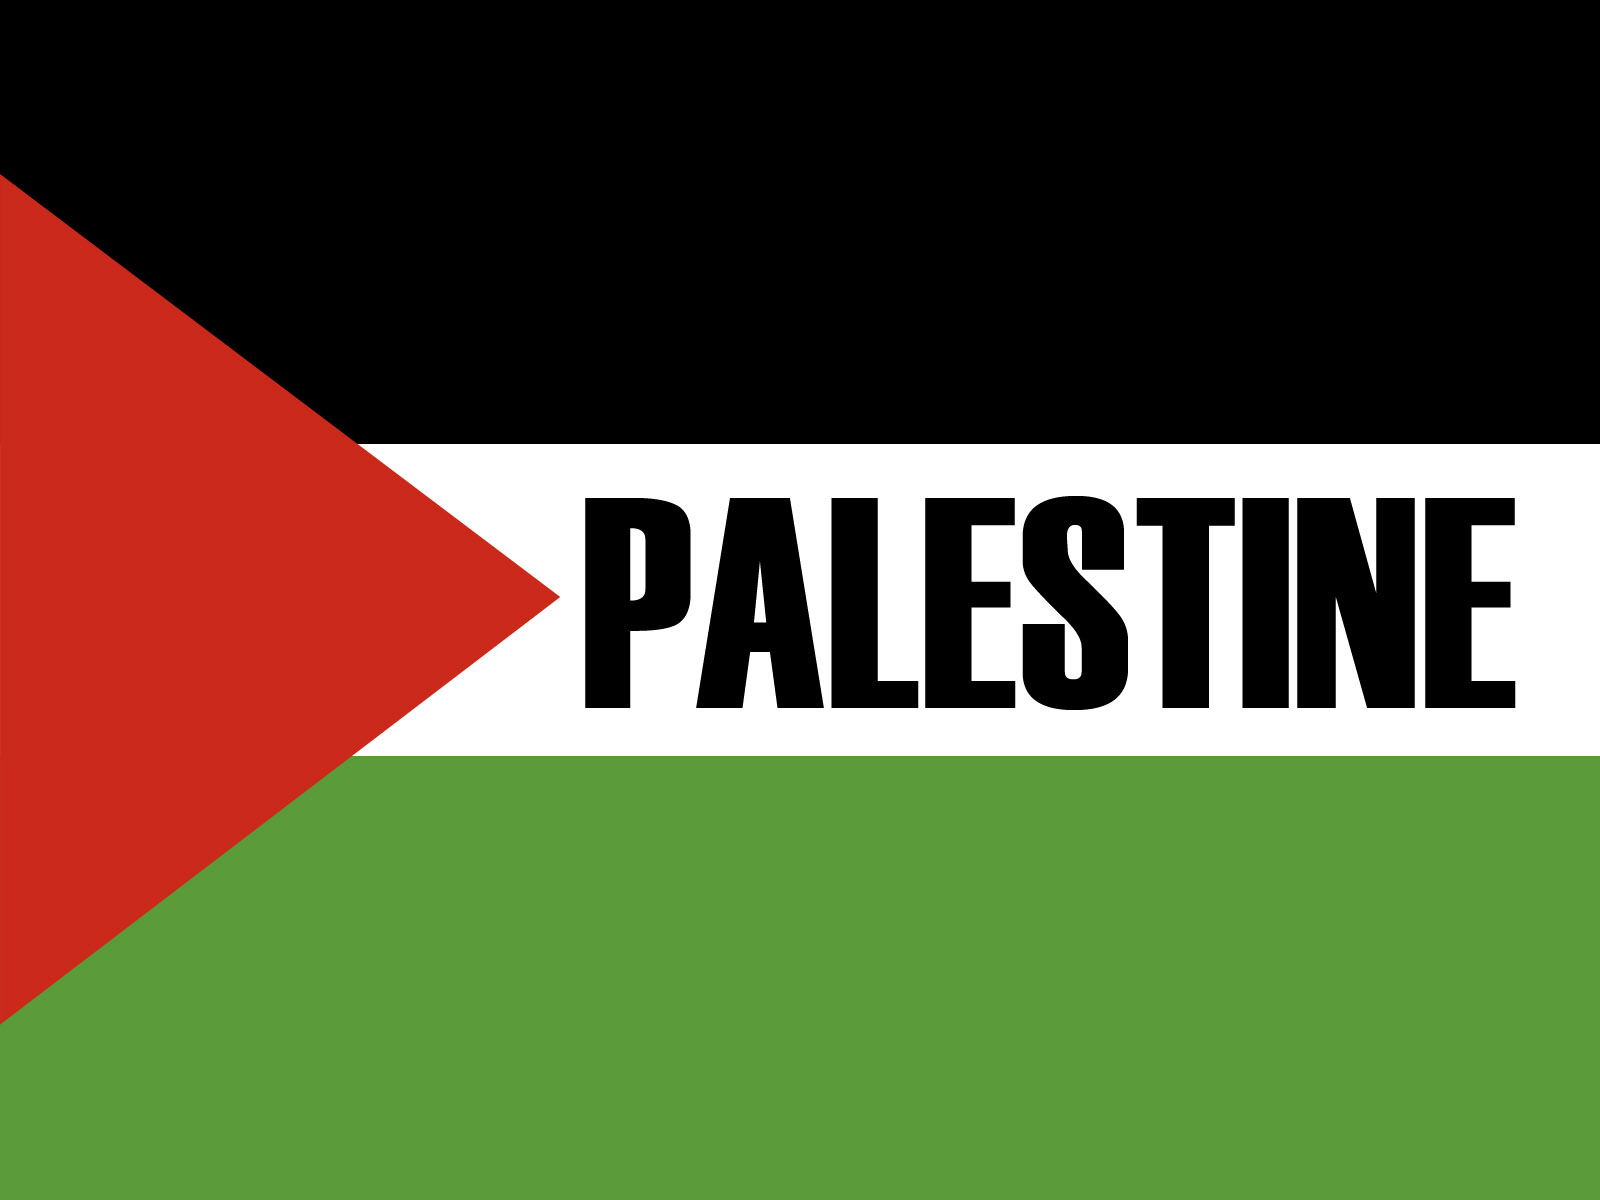 palestine flag backgrounds wallpapersjpg 1600x1200